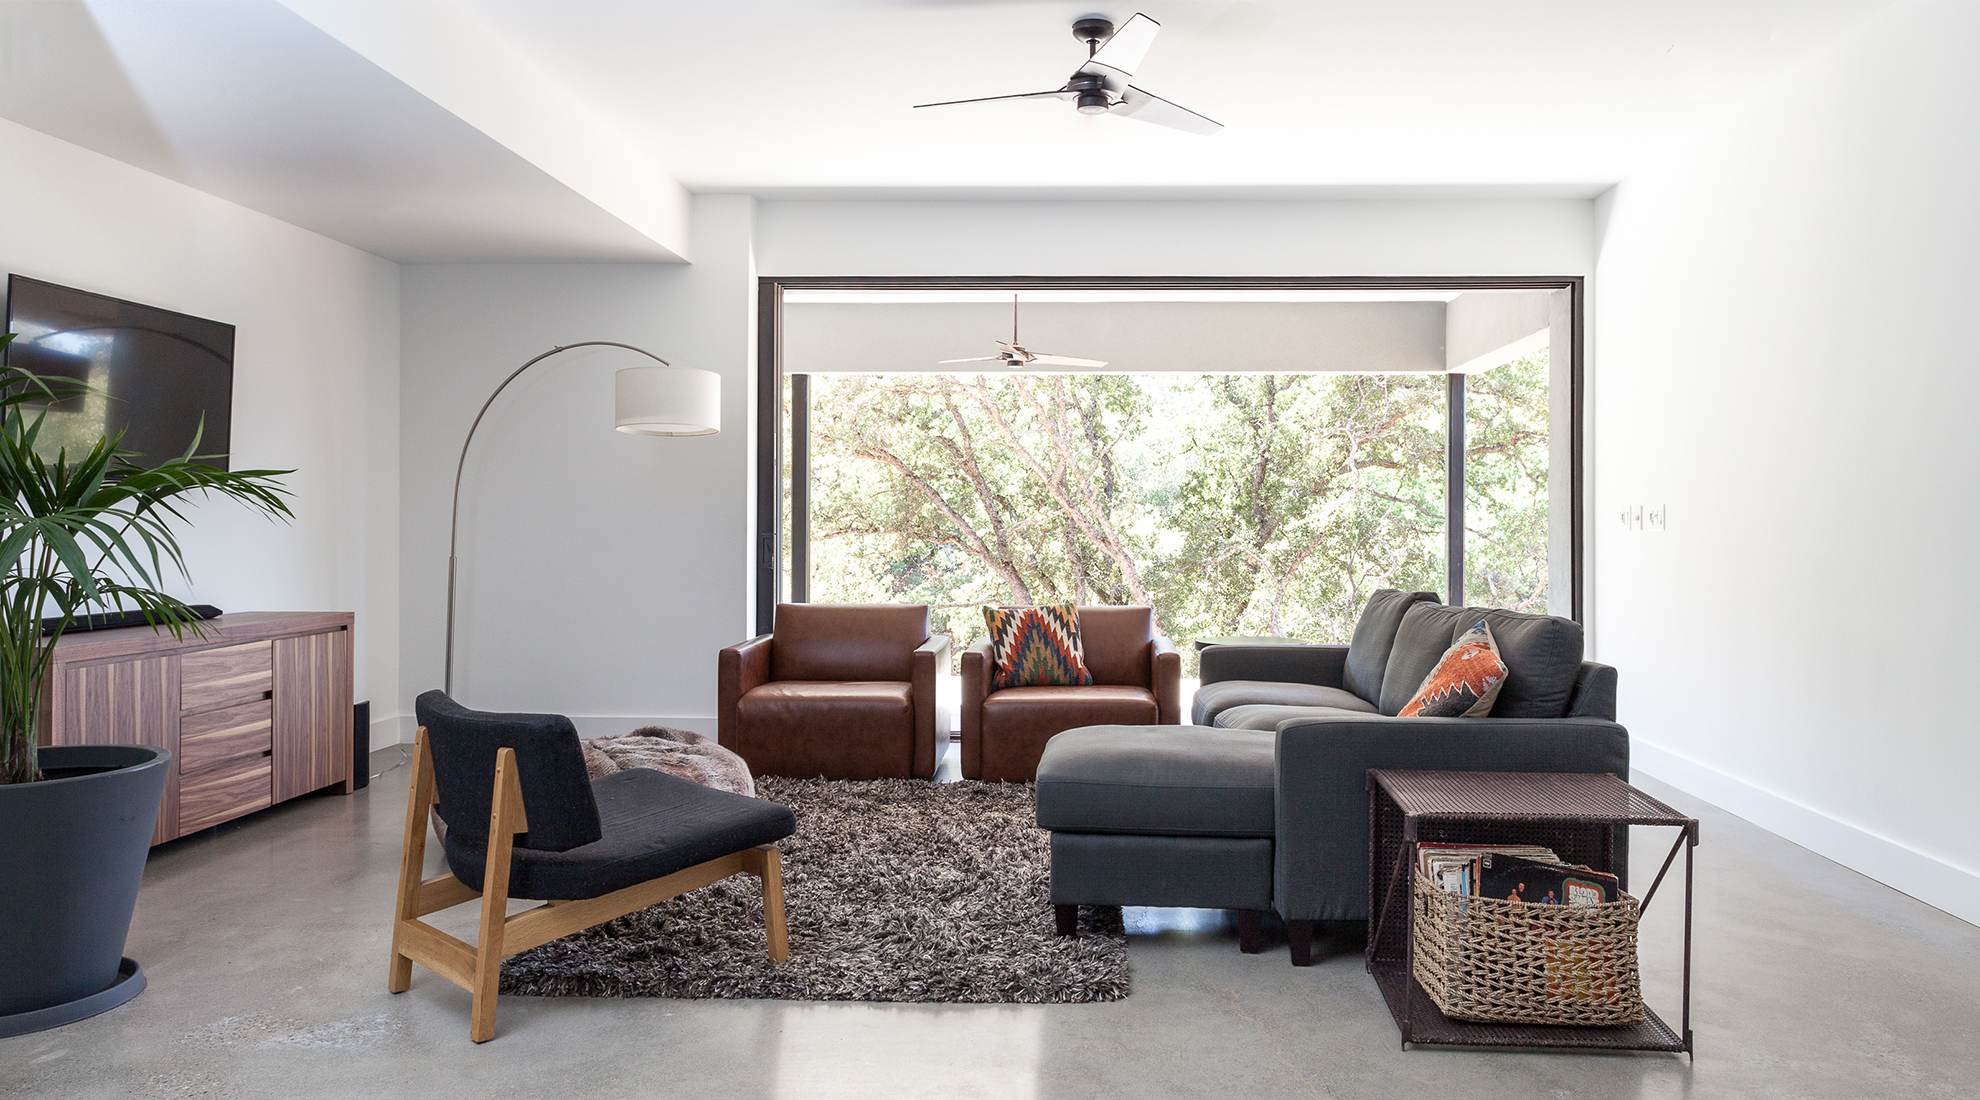 Lower level living room. Fan: Torsion Fan by Modern Fan Company. All photos © Kat Alves Photography.